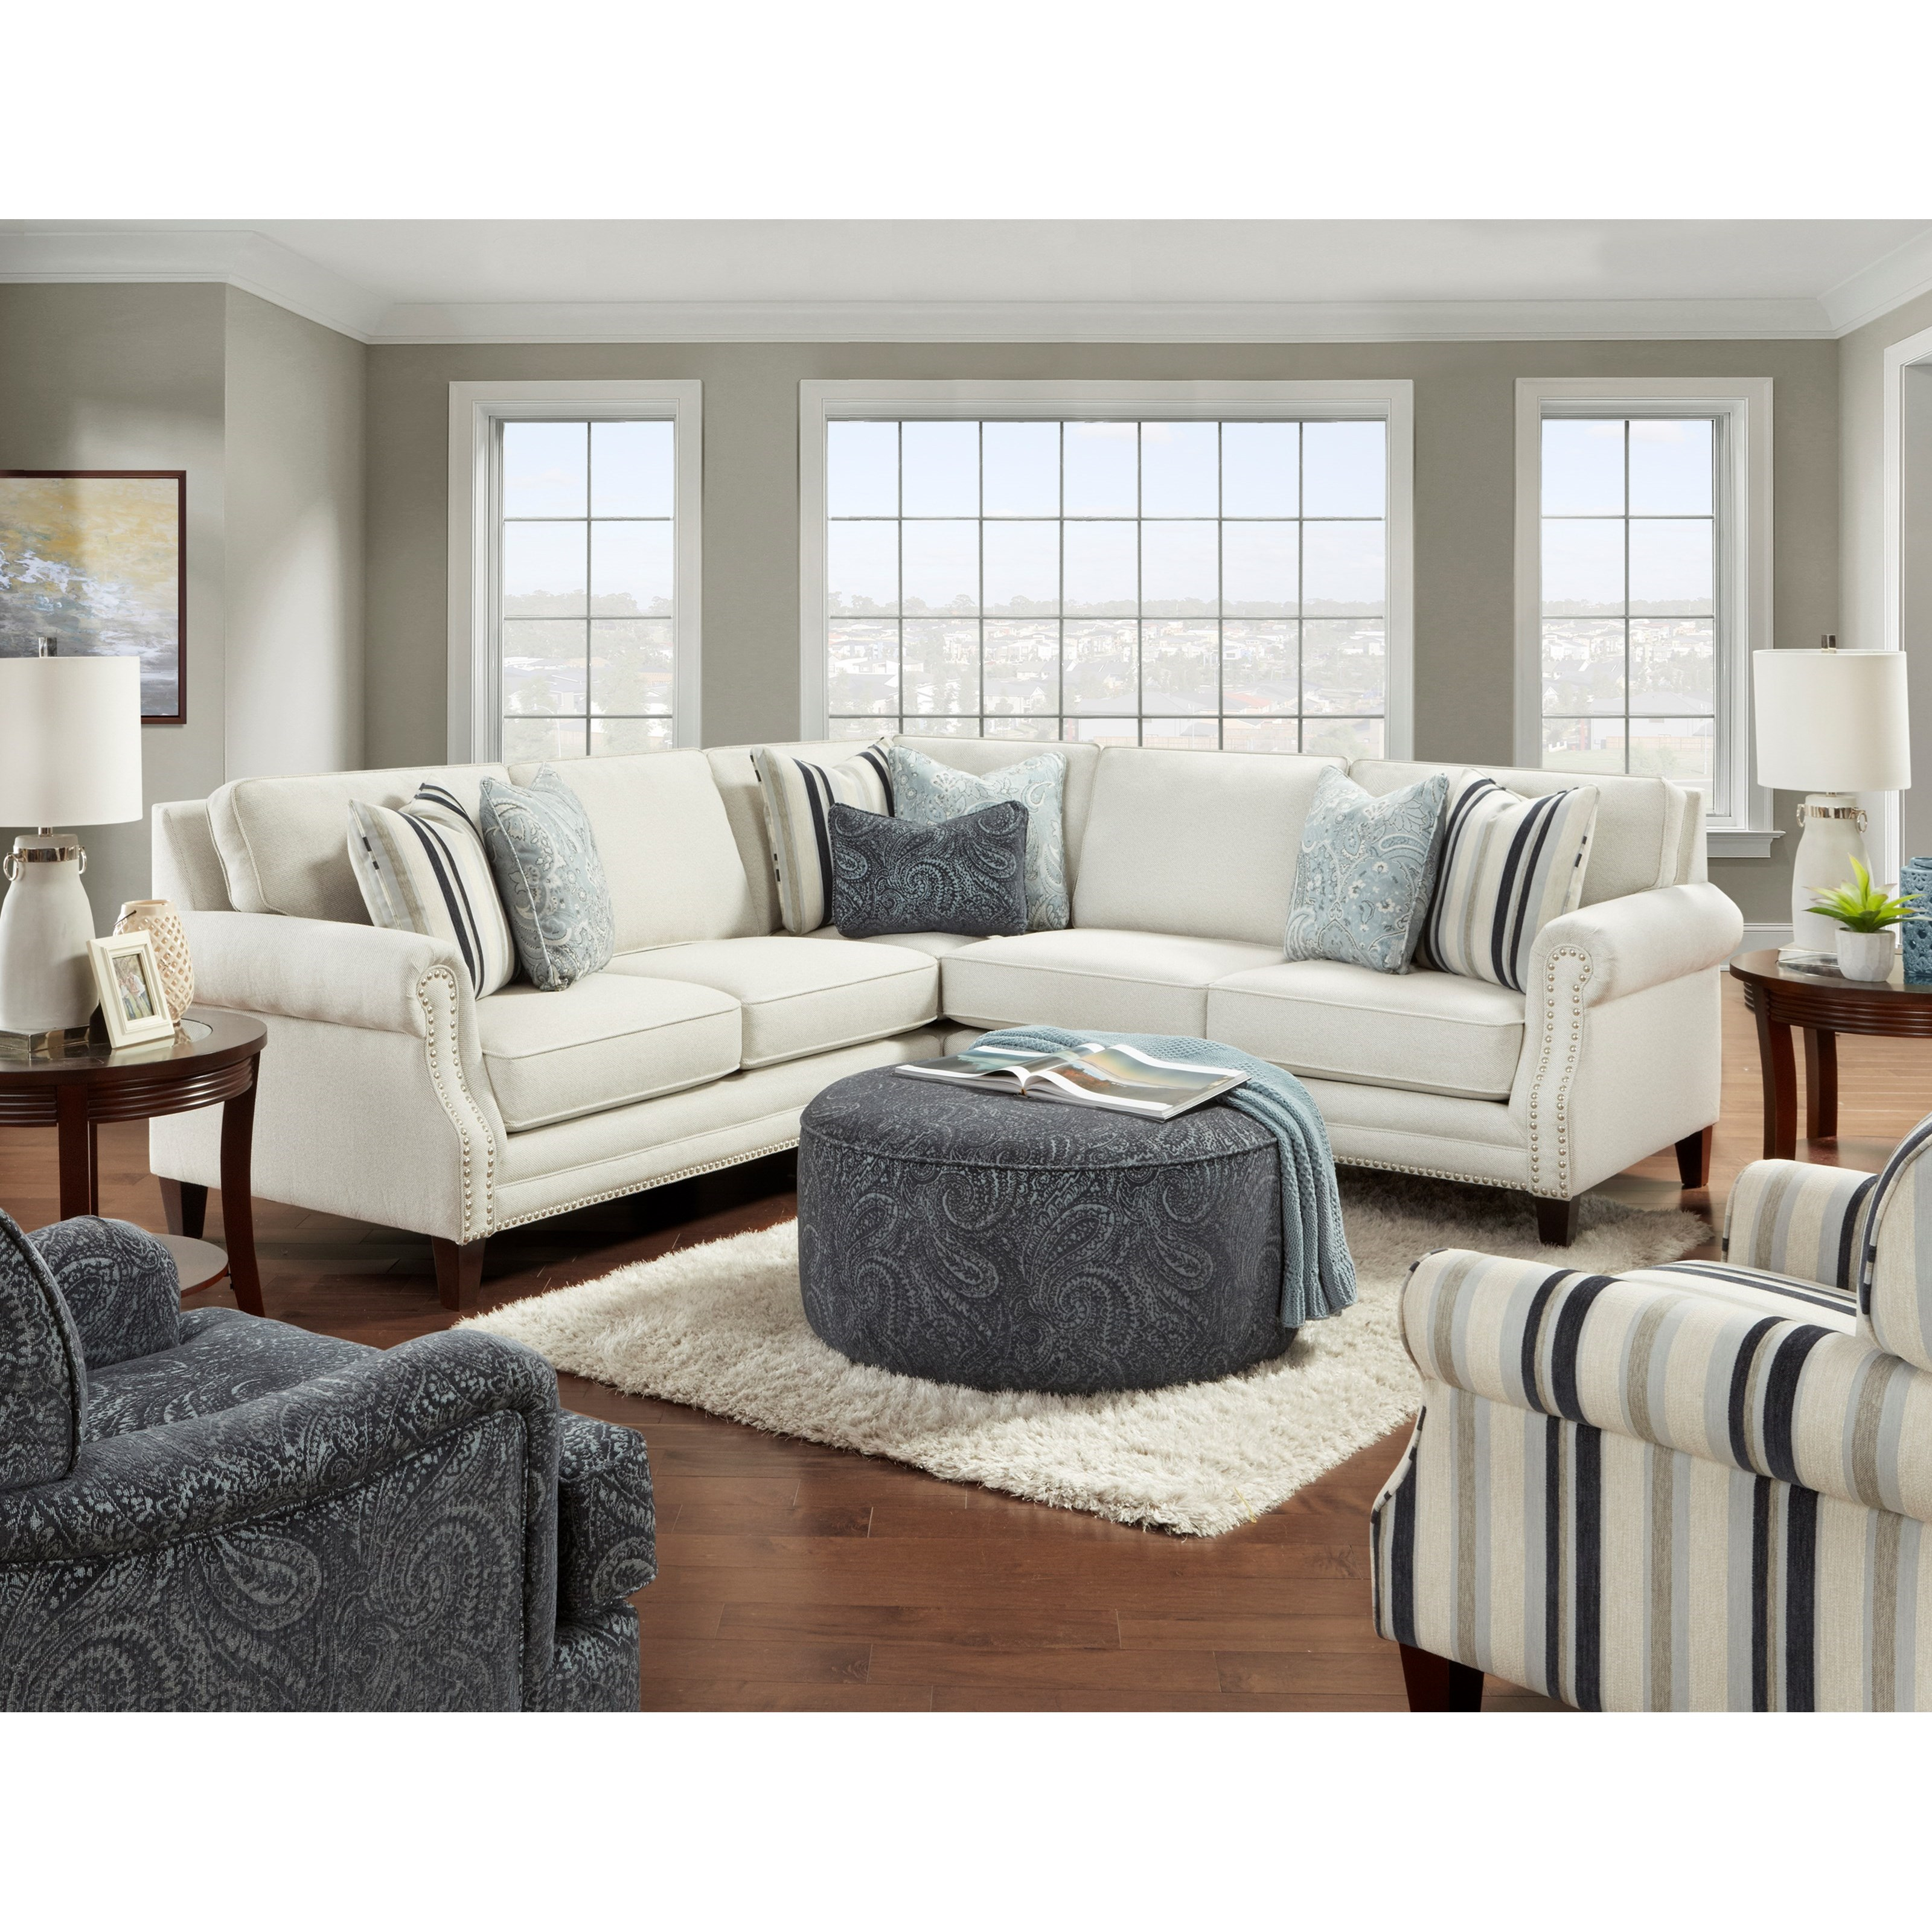 2530 Living Room Group by Fusion Furniture at Furniture Superstore - Rochester, MN